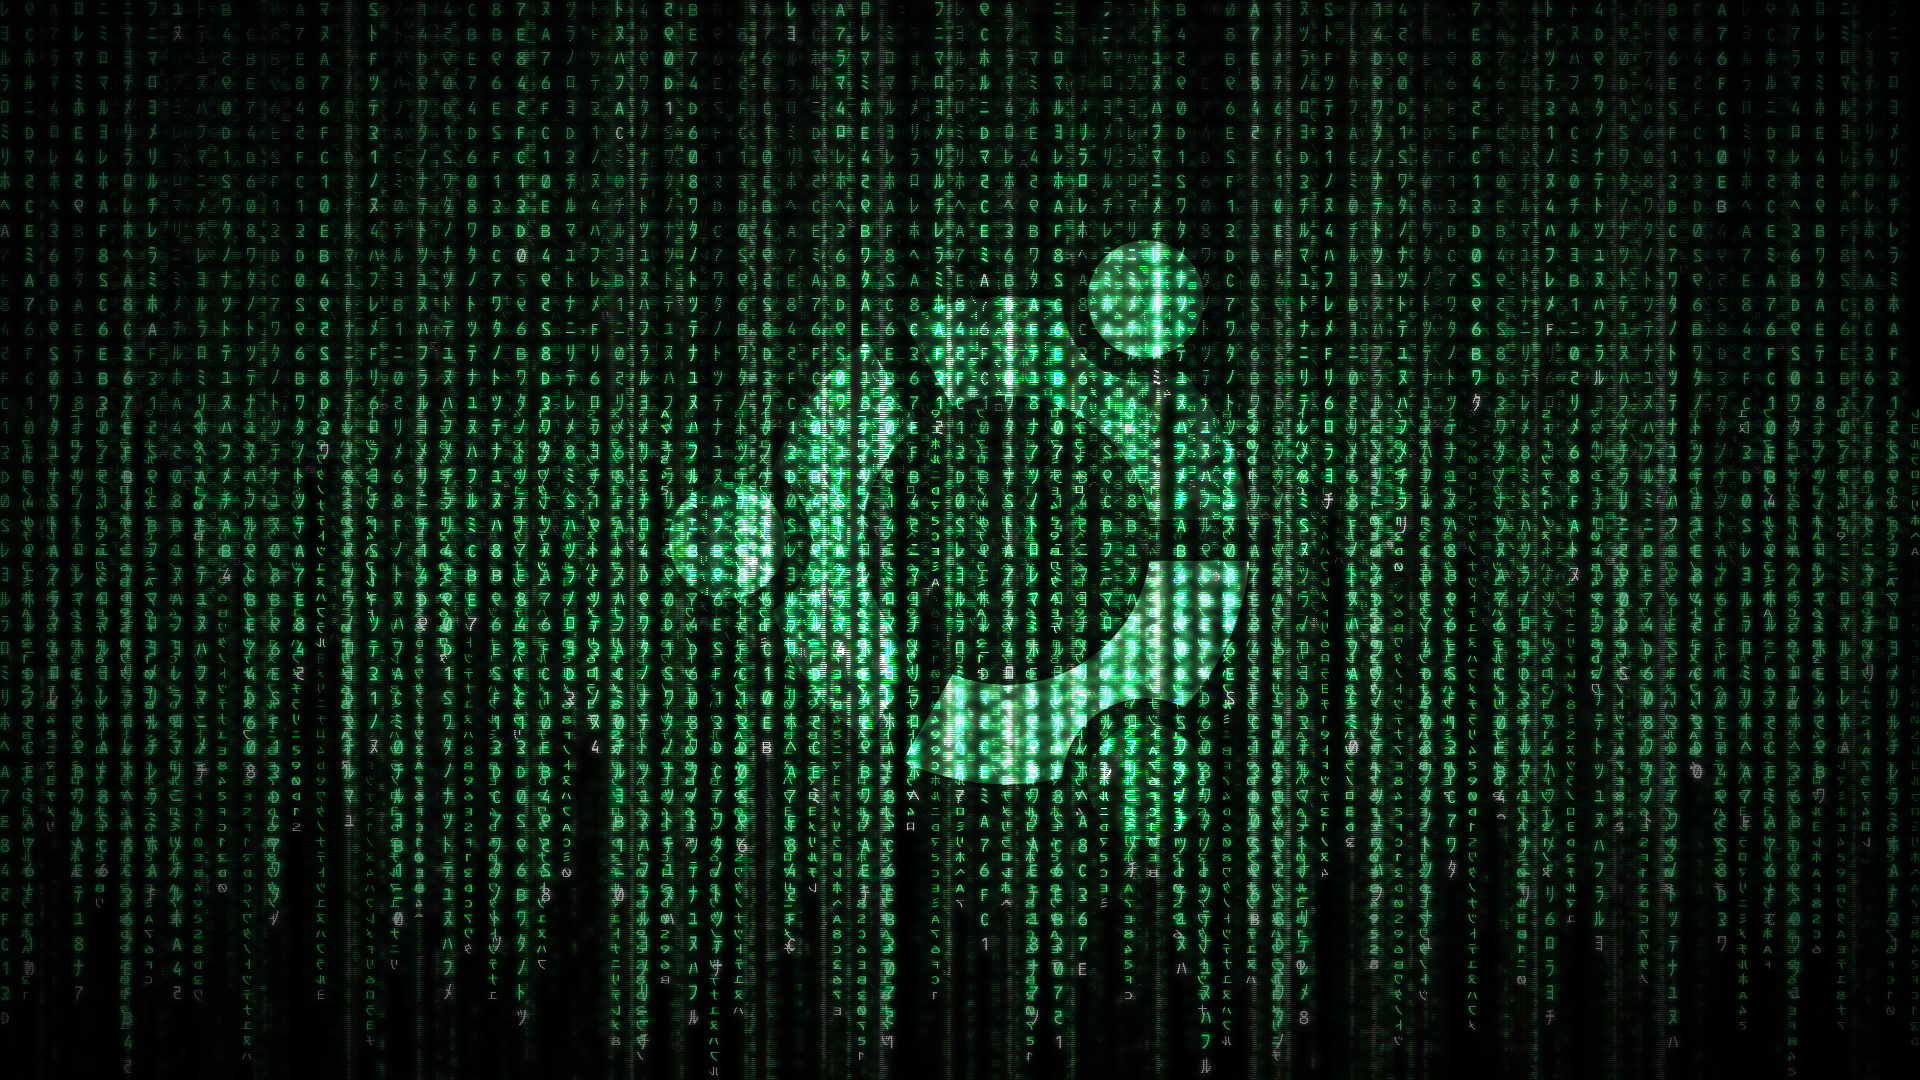 the matrix neo wallpaper | hd wallpapers | pinterest | hd